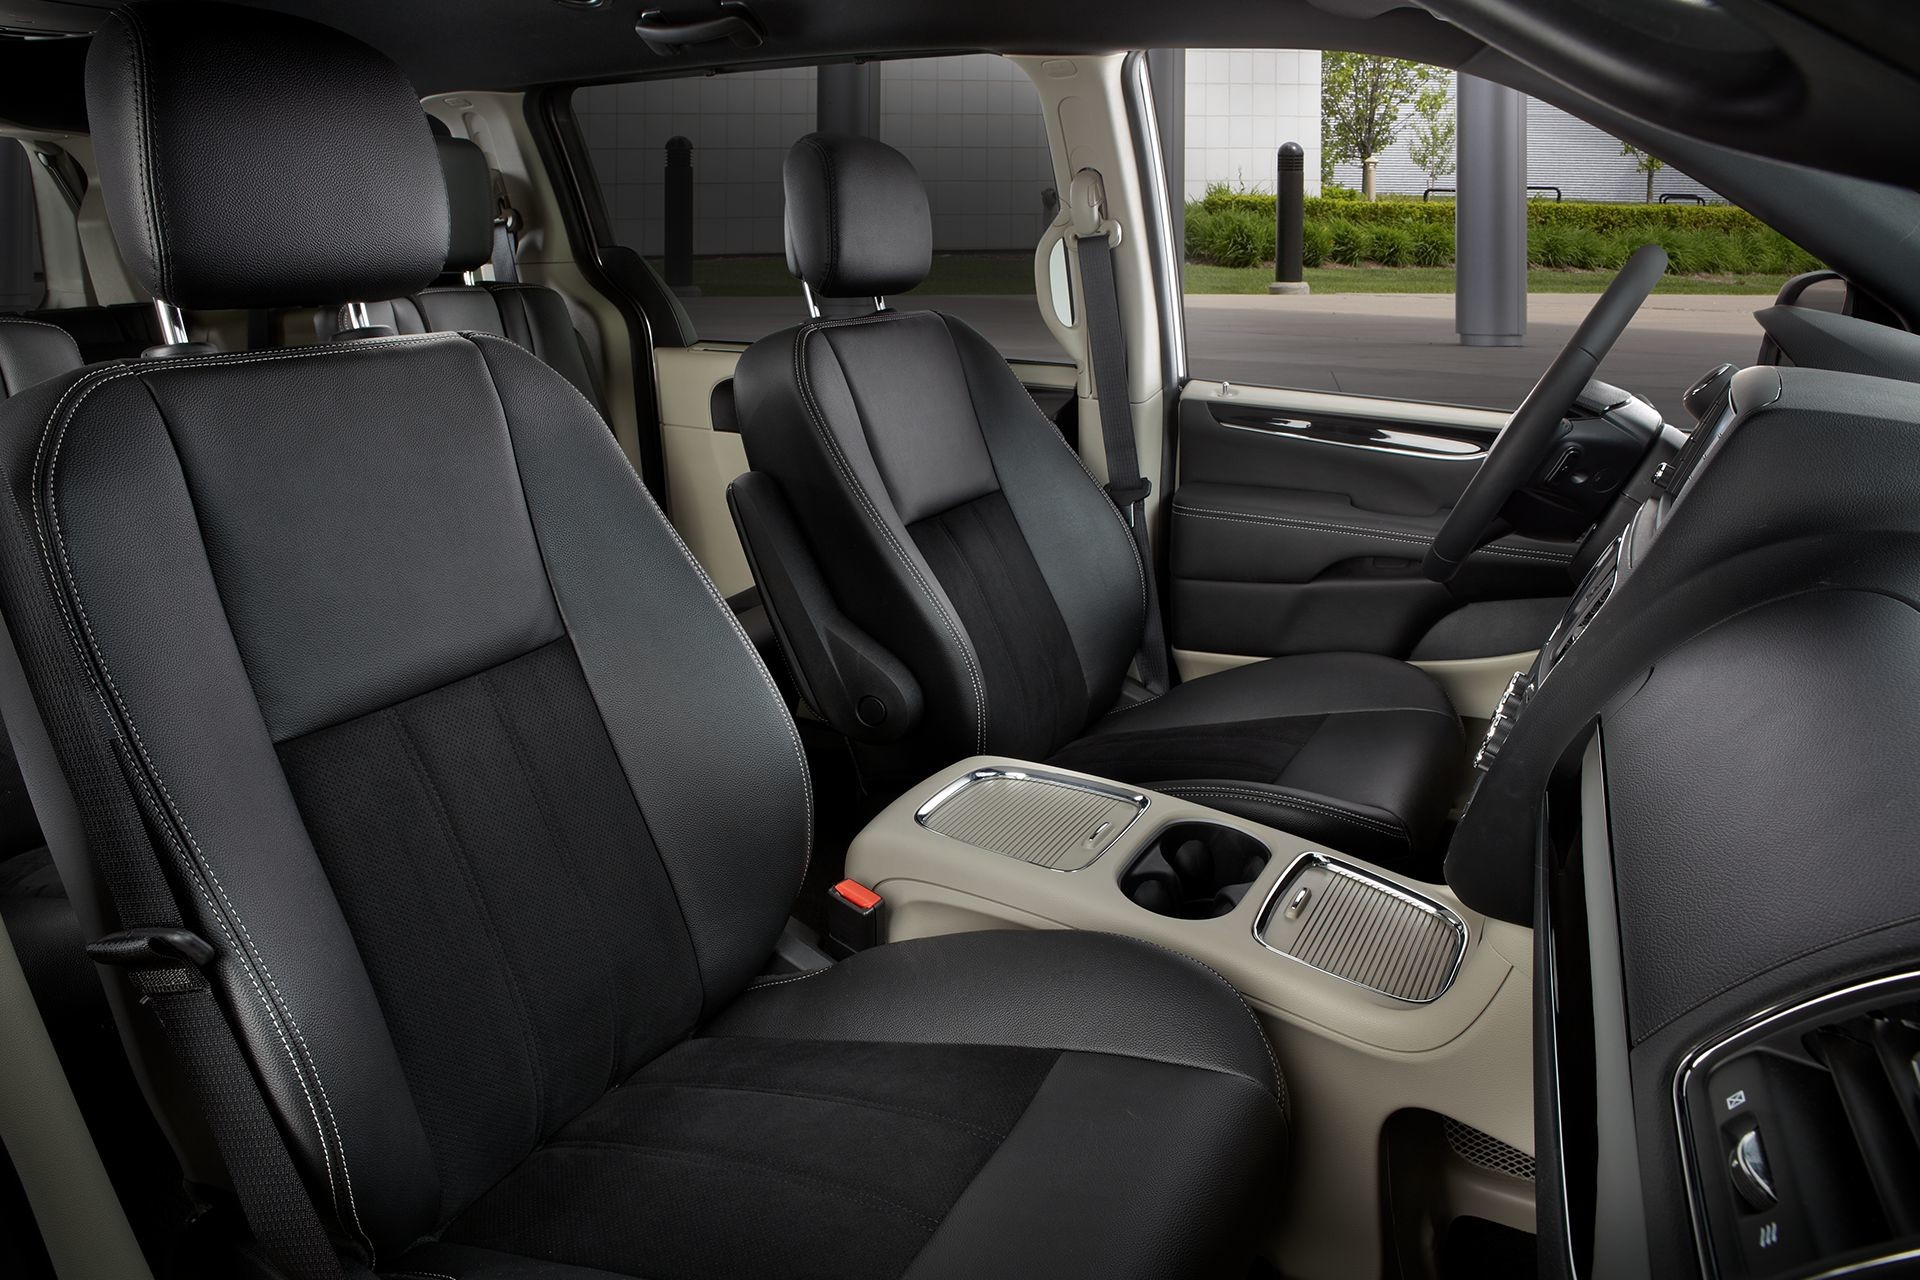 2019 Dodge Grand Caravan interior view of front seats in black